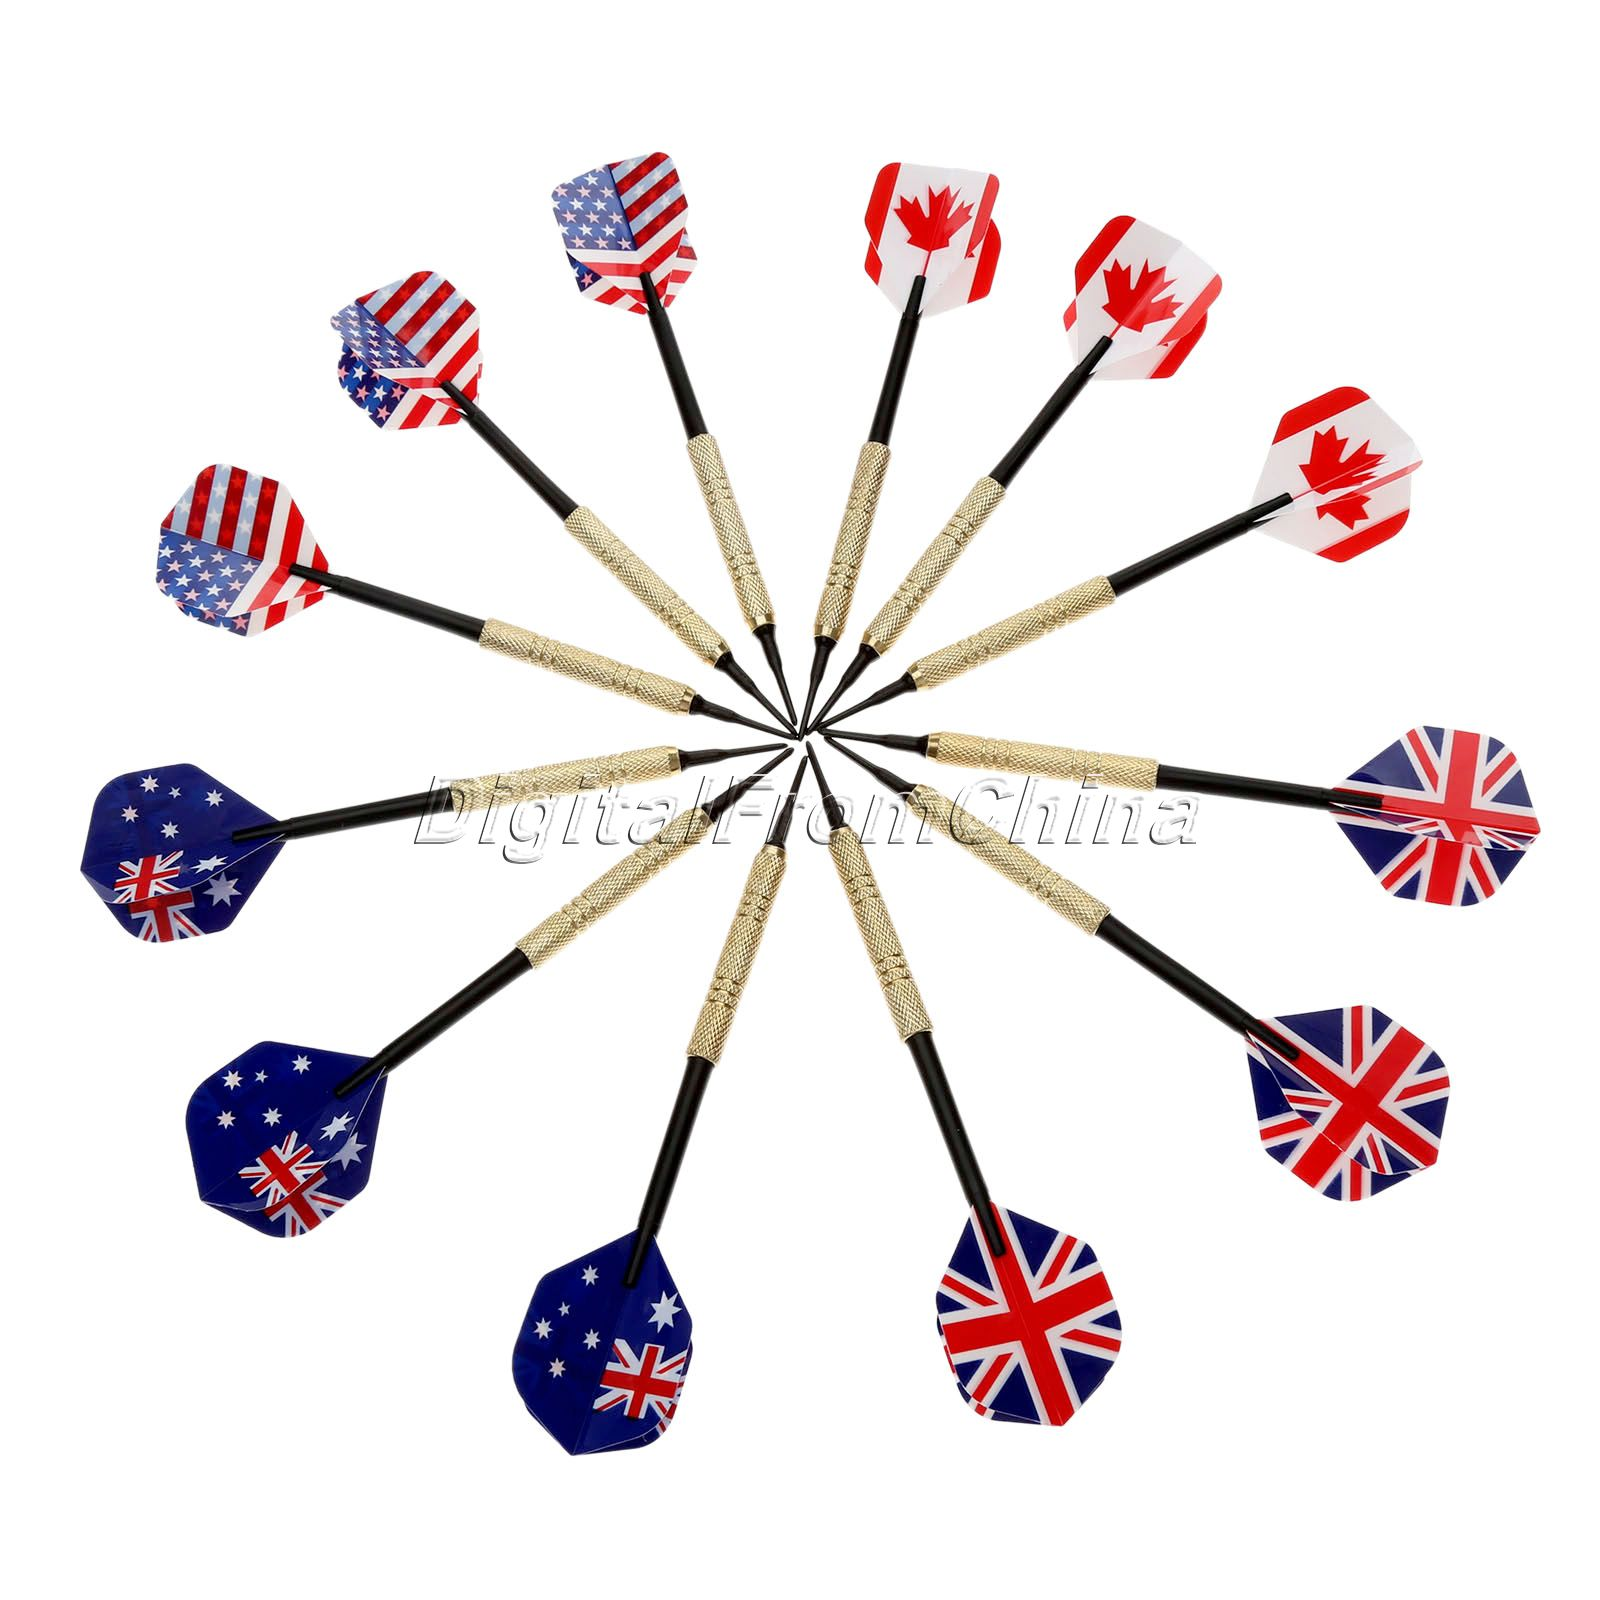 NEW Sports Accessories 12Pcs Professional Darts Flights 18g for Electronic Dartboard with Flight+50Pcs Extra Tips Steel Needle(China (Mainland))